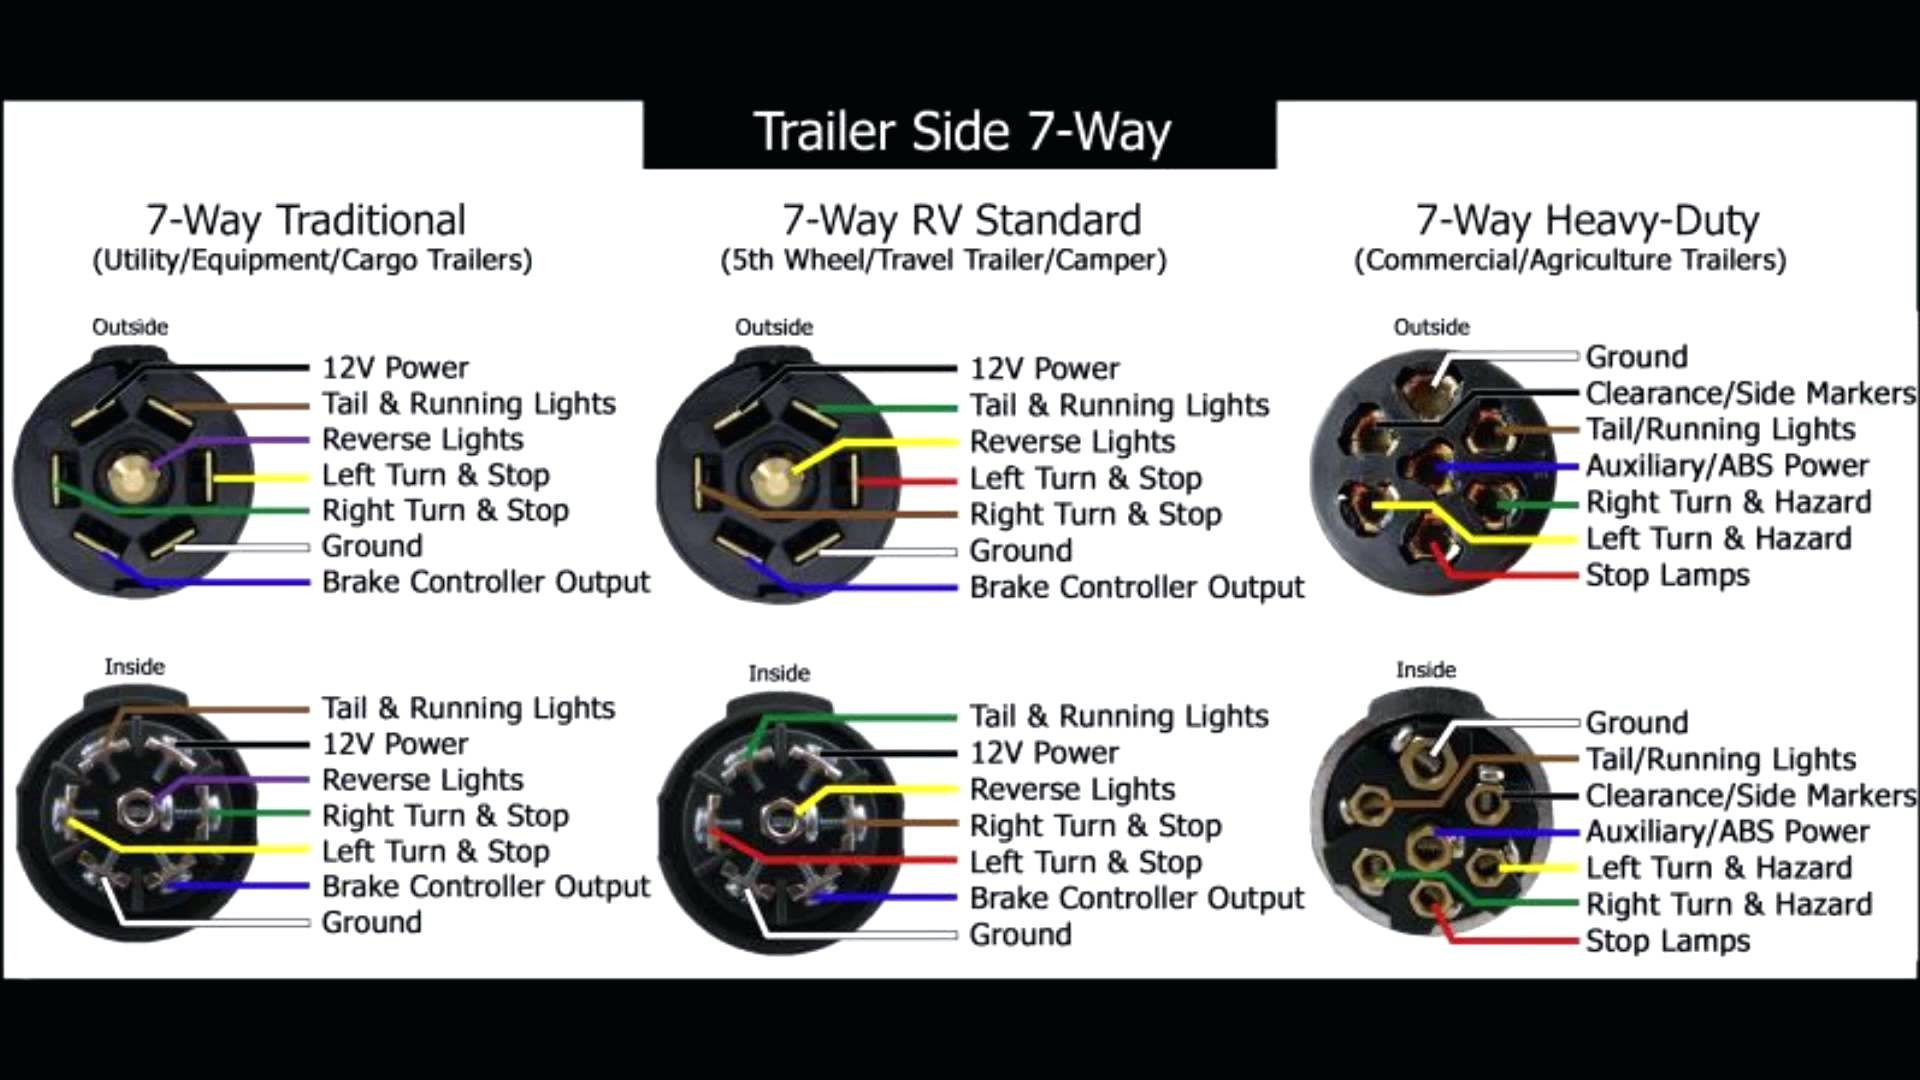 Trailer Connectors In Australia At 7 Pin Plug Wiring Diagram For To - 7 Pin Round Trailer Wiring Diagram Australia